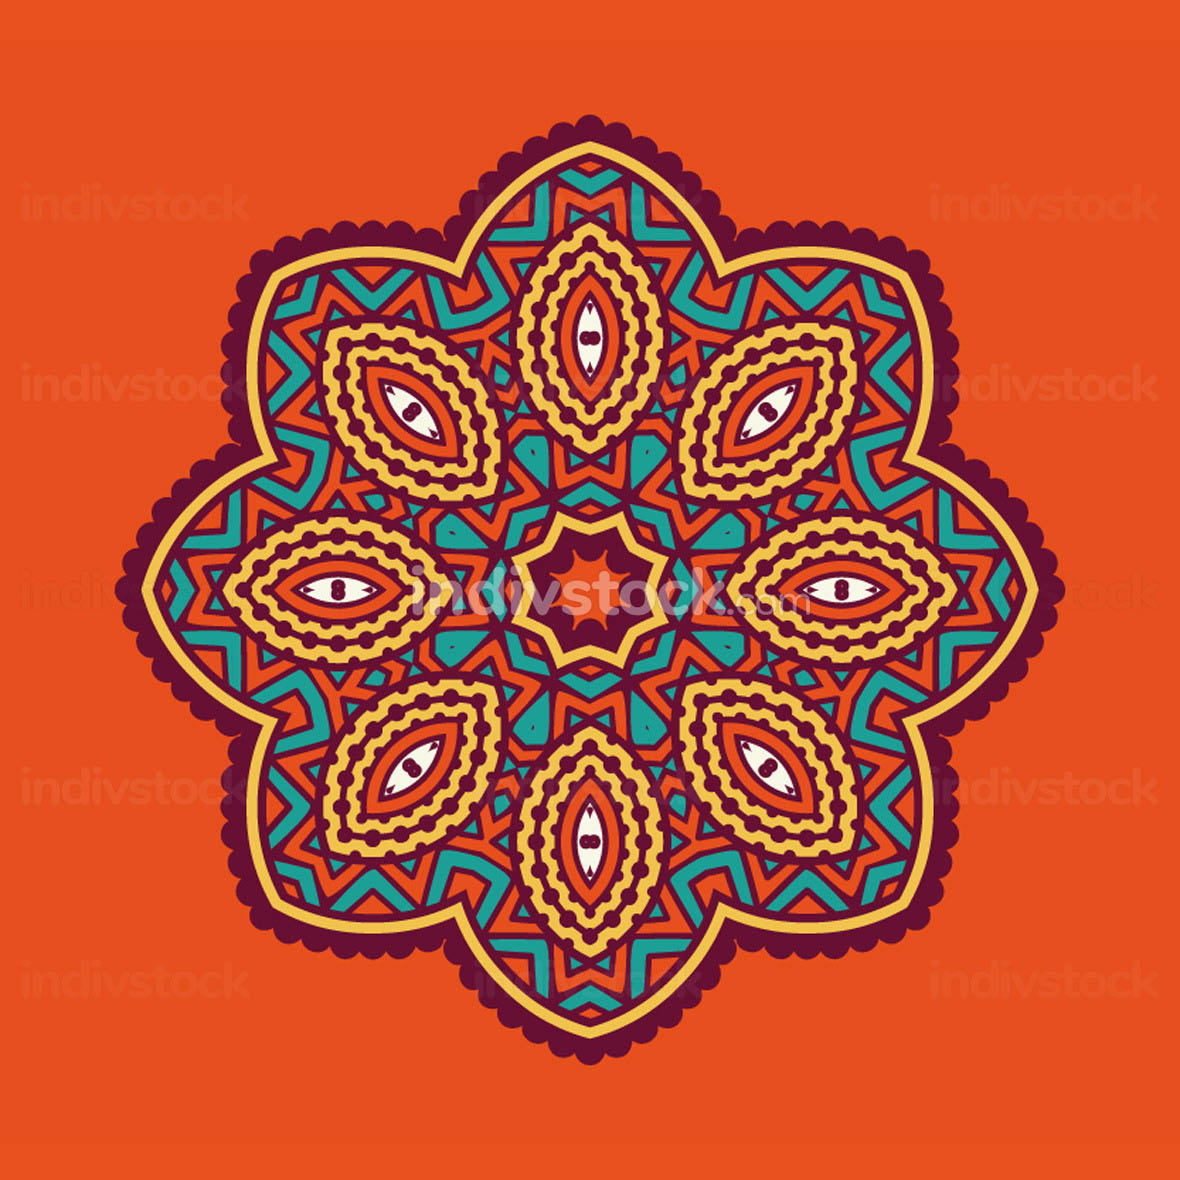 colored circular ornament in Oriental style